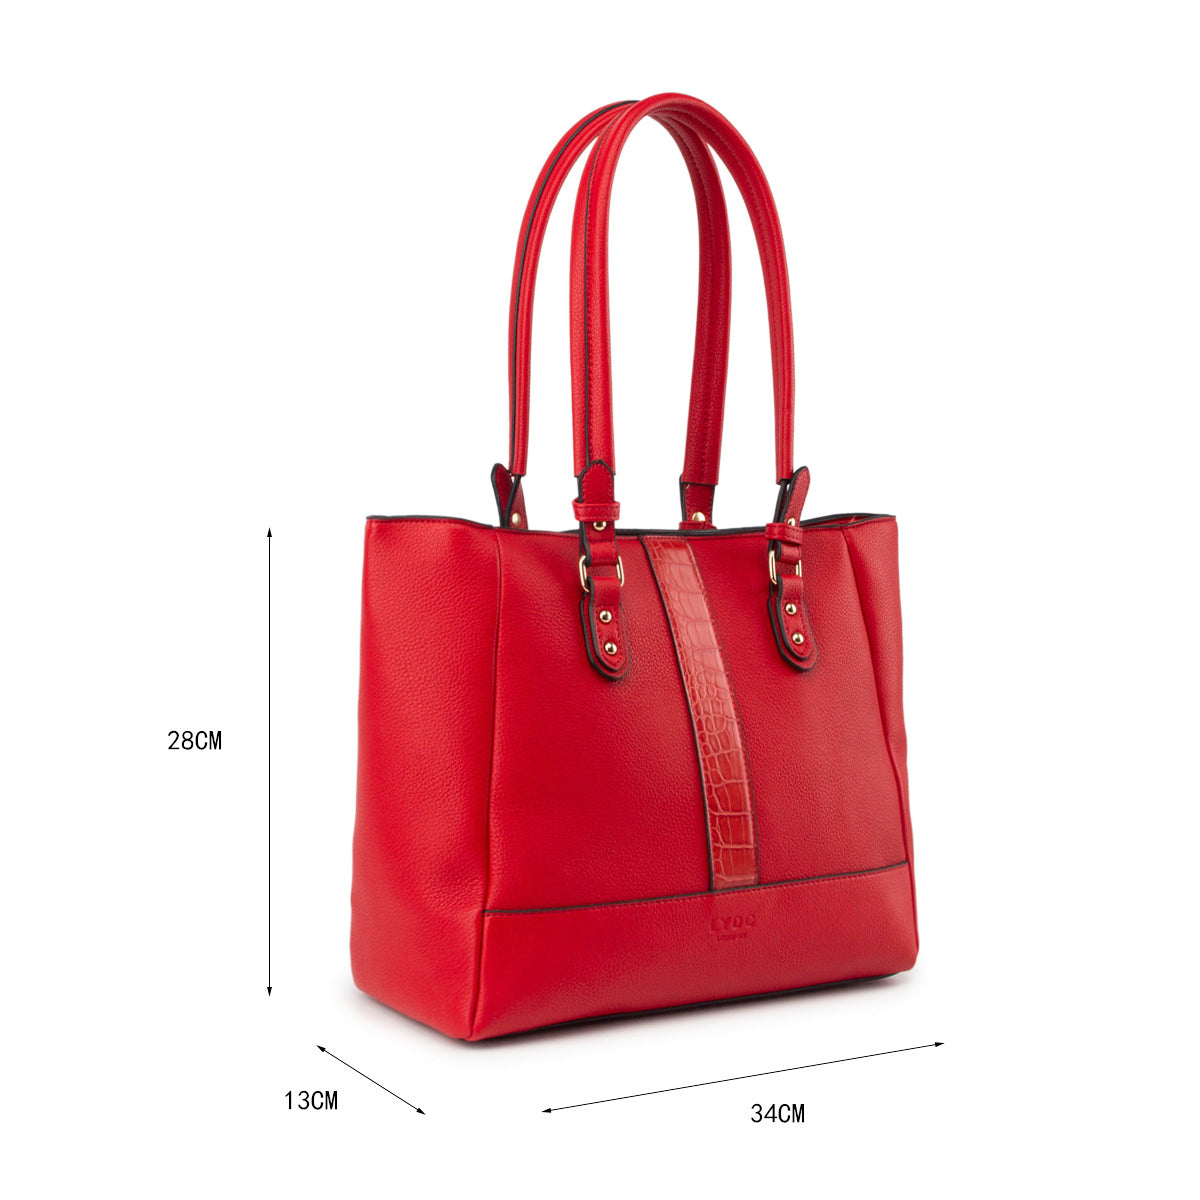 LYDC Luxurious Handbag with Unique Design